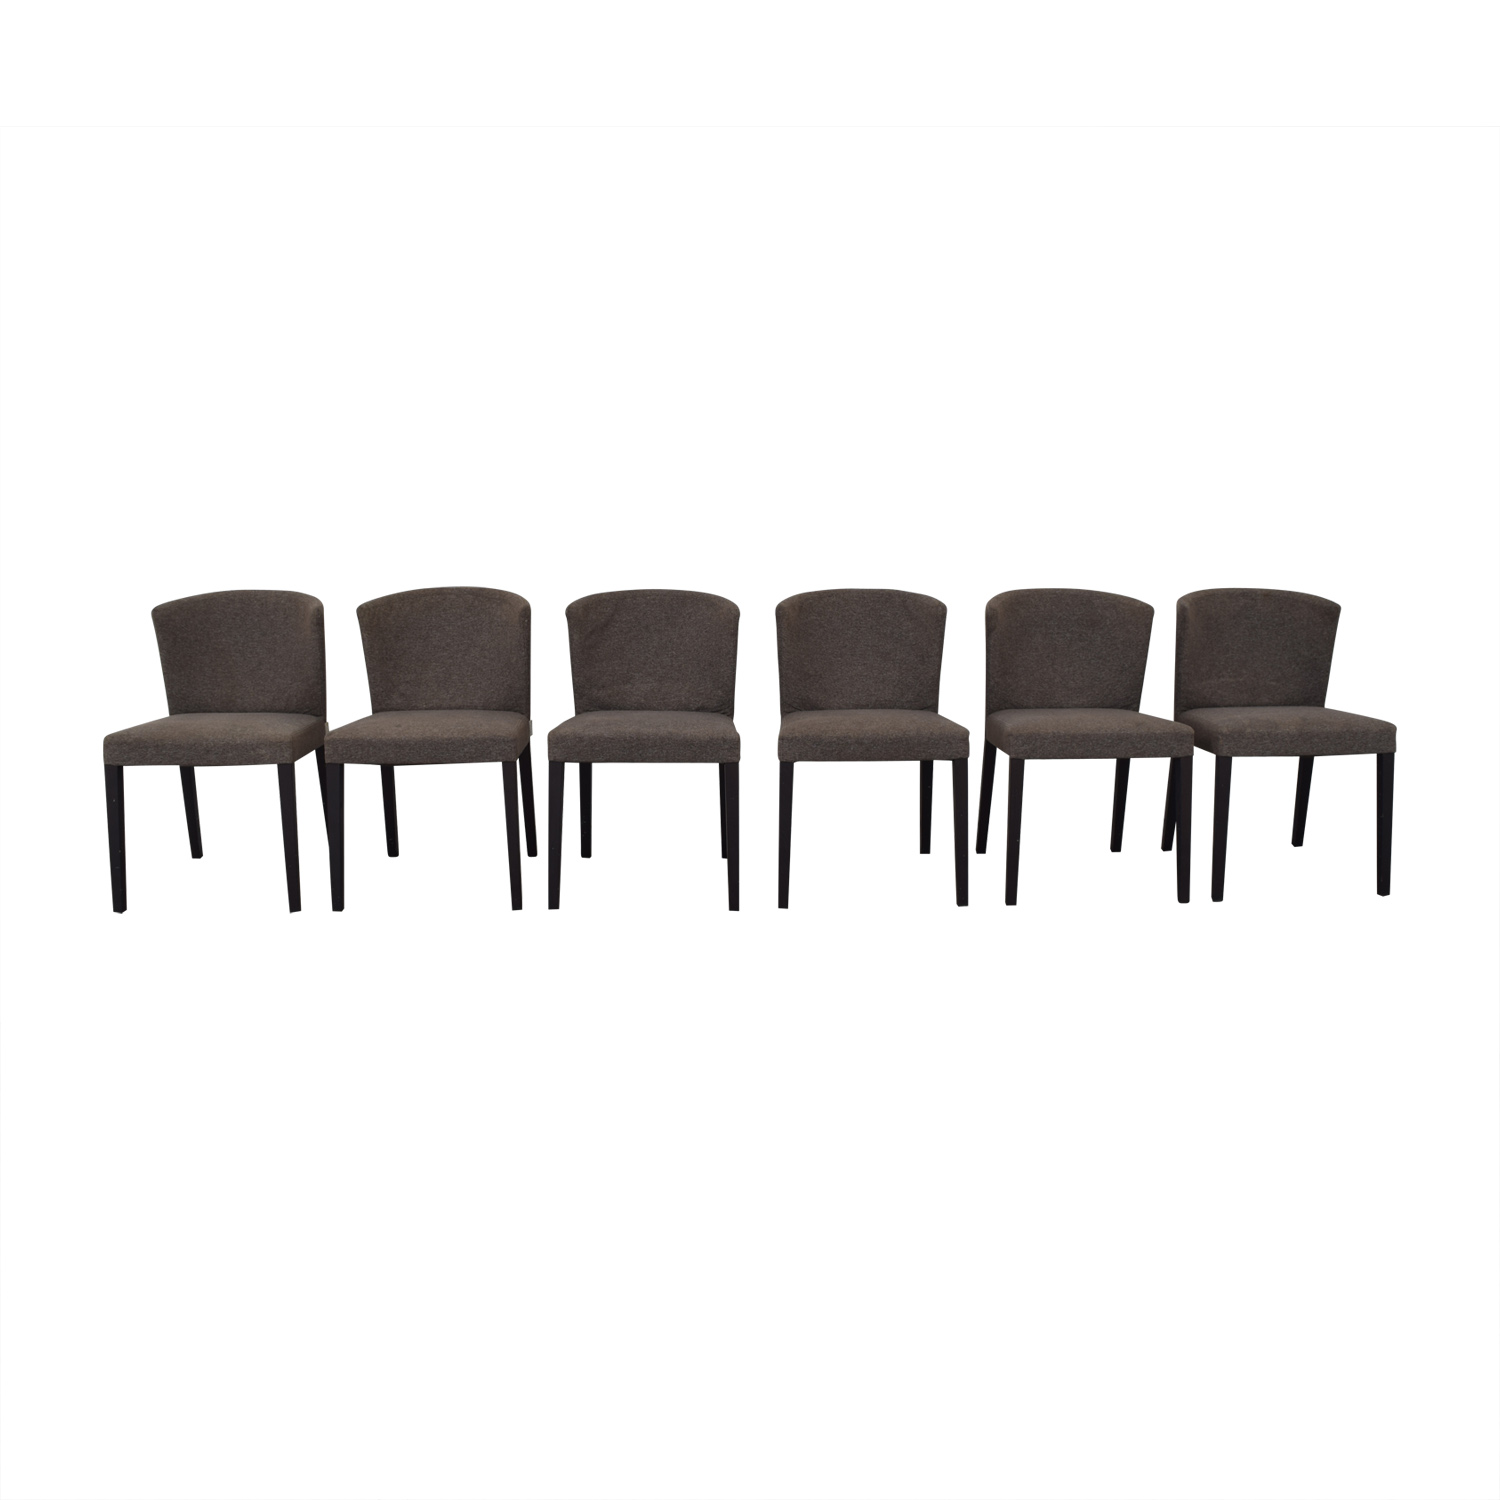 Heal's of London Heals of London Grey Upholstered Dining Chairs gray